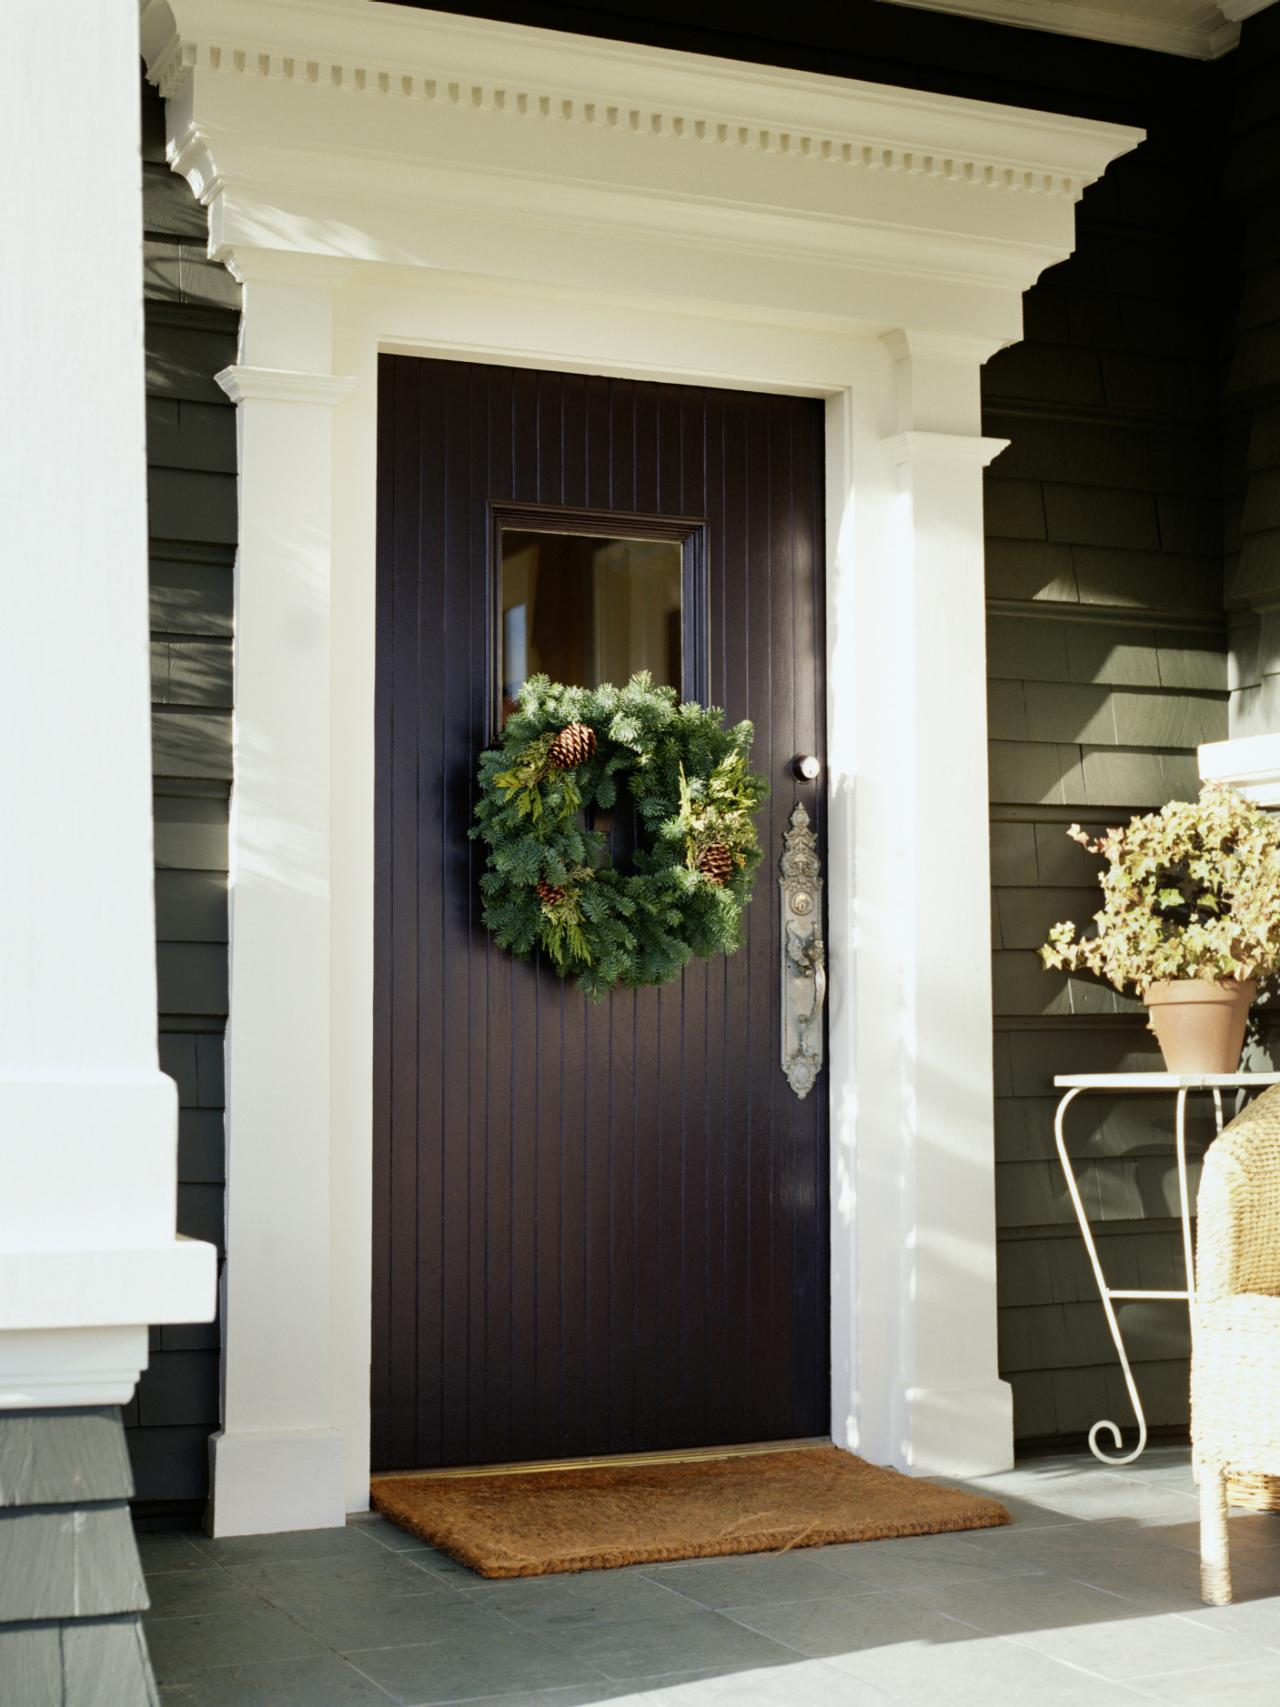 Christmas door decorations interior design styles and Front entrance ideas interior